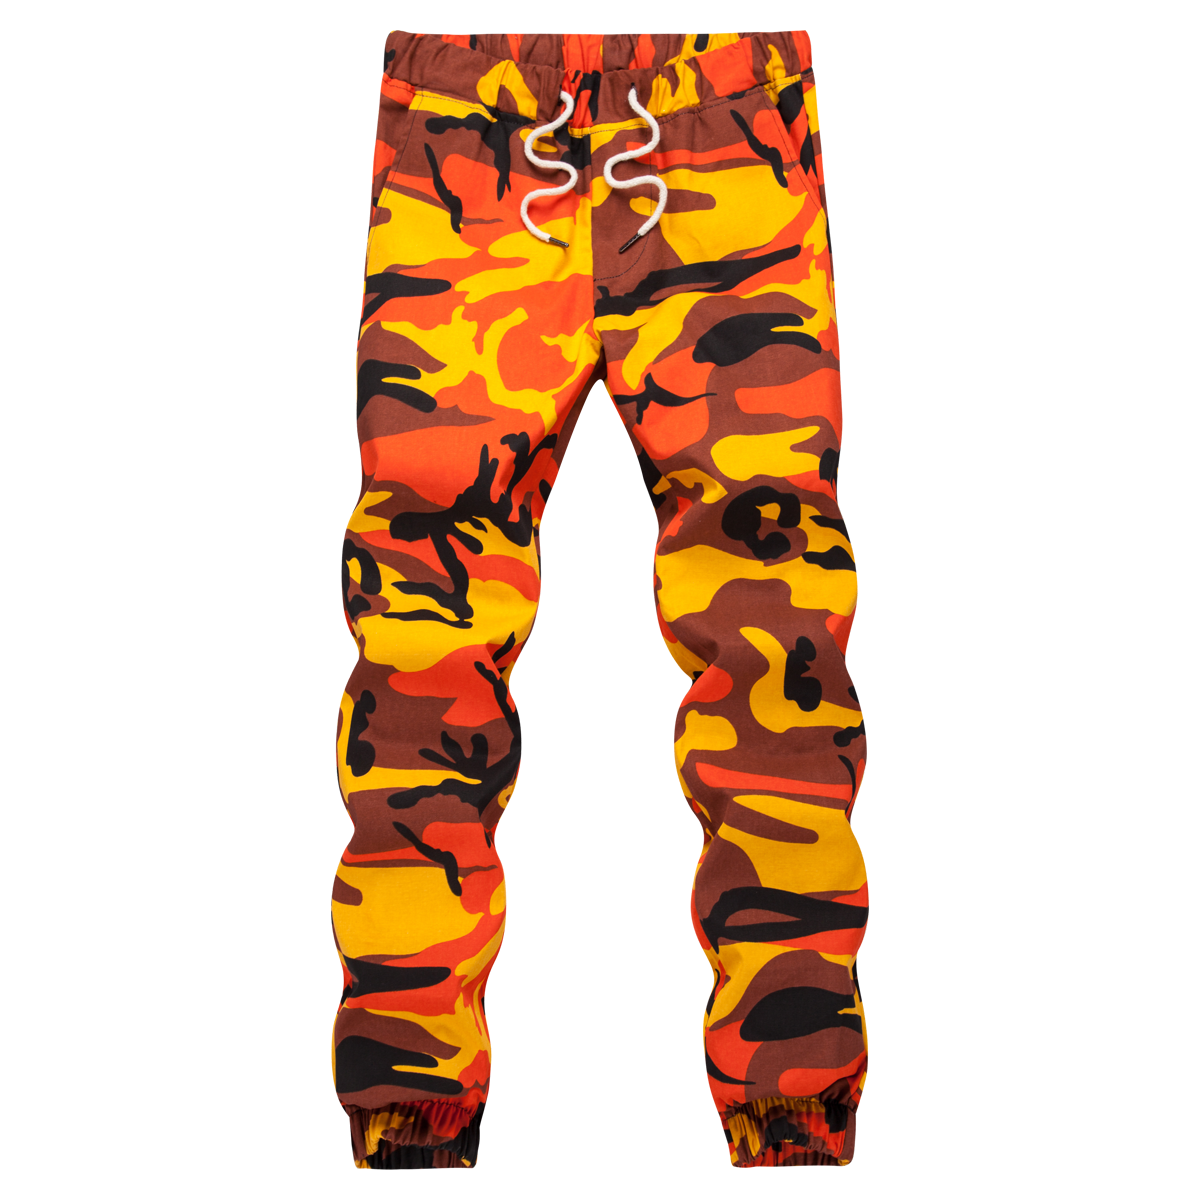 US $10.63 65% OFF|Ins Orange Camouflage Jogger Pants Men Hip Hop Woven Casual Pants Tactical Military Trouser Pockets Cotton 2020 Sweatpants in Harem